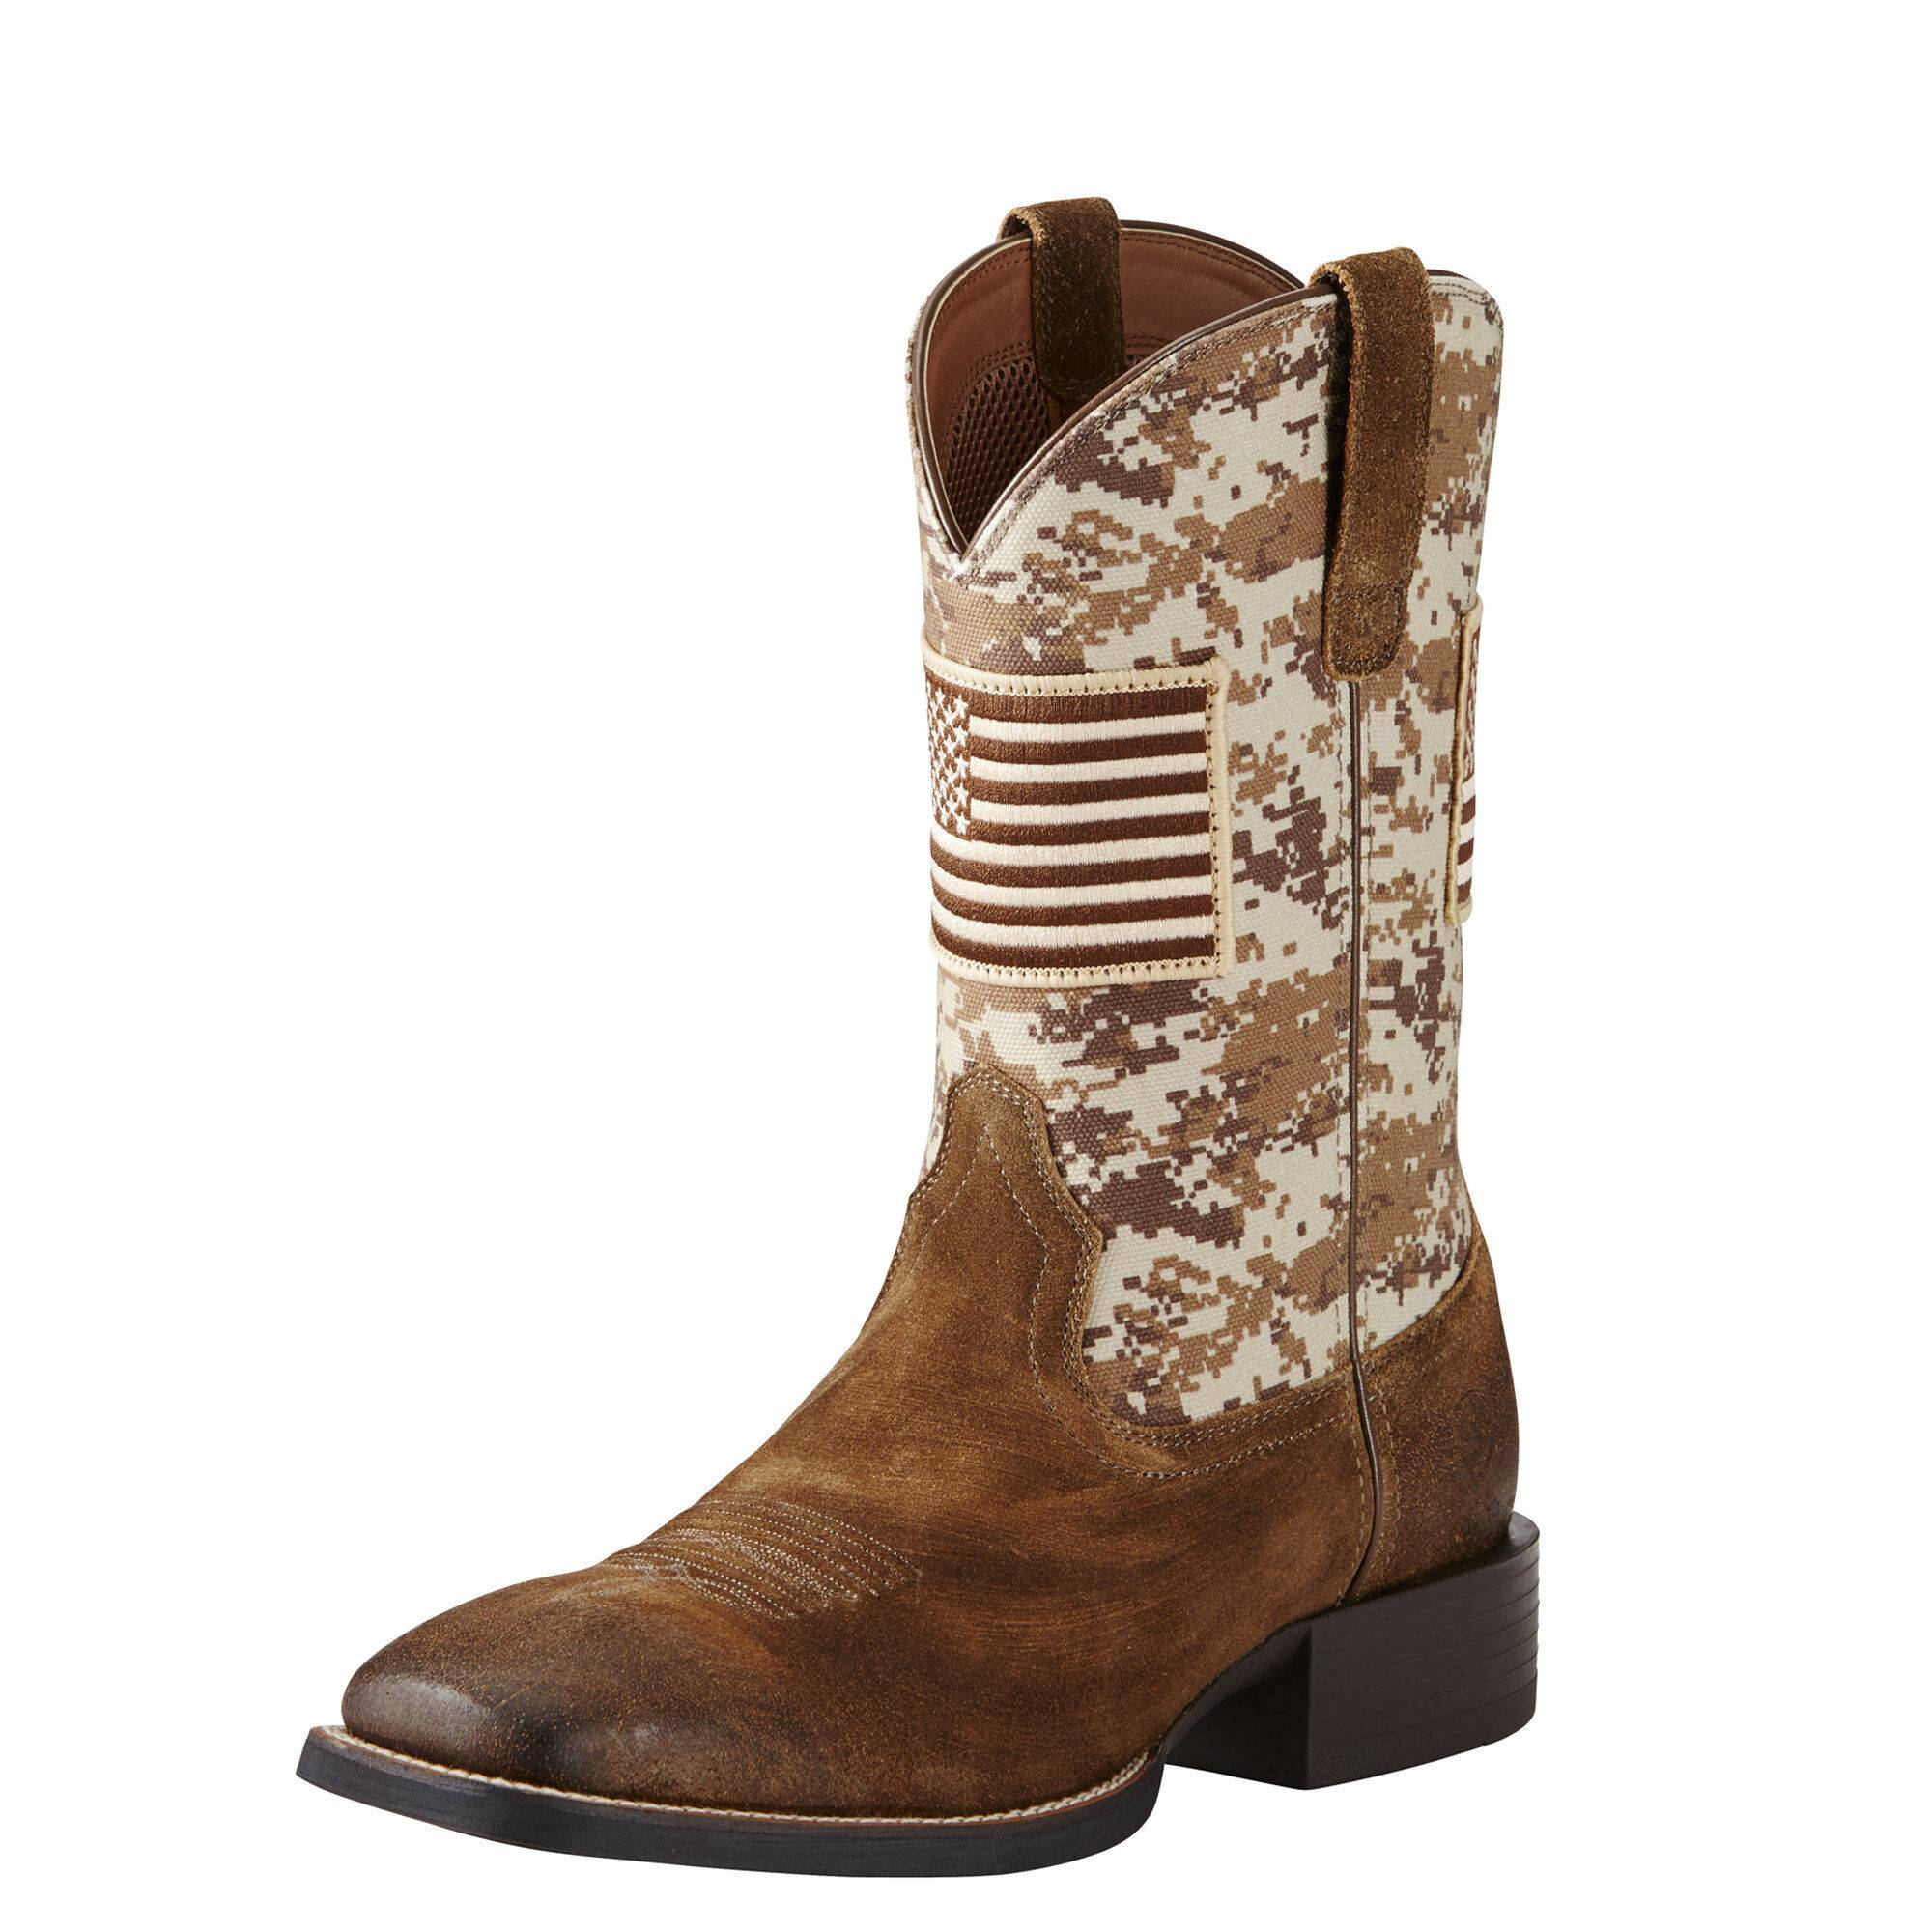 Ariat Men's Sport Patriot Western Boots in Antique Mocha Suede Leather, Size 7 EE / Wide by Ariat